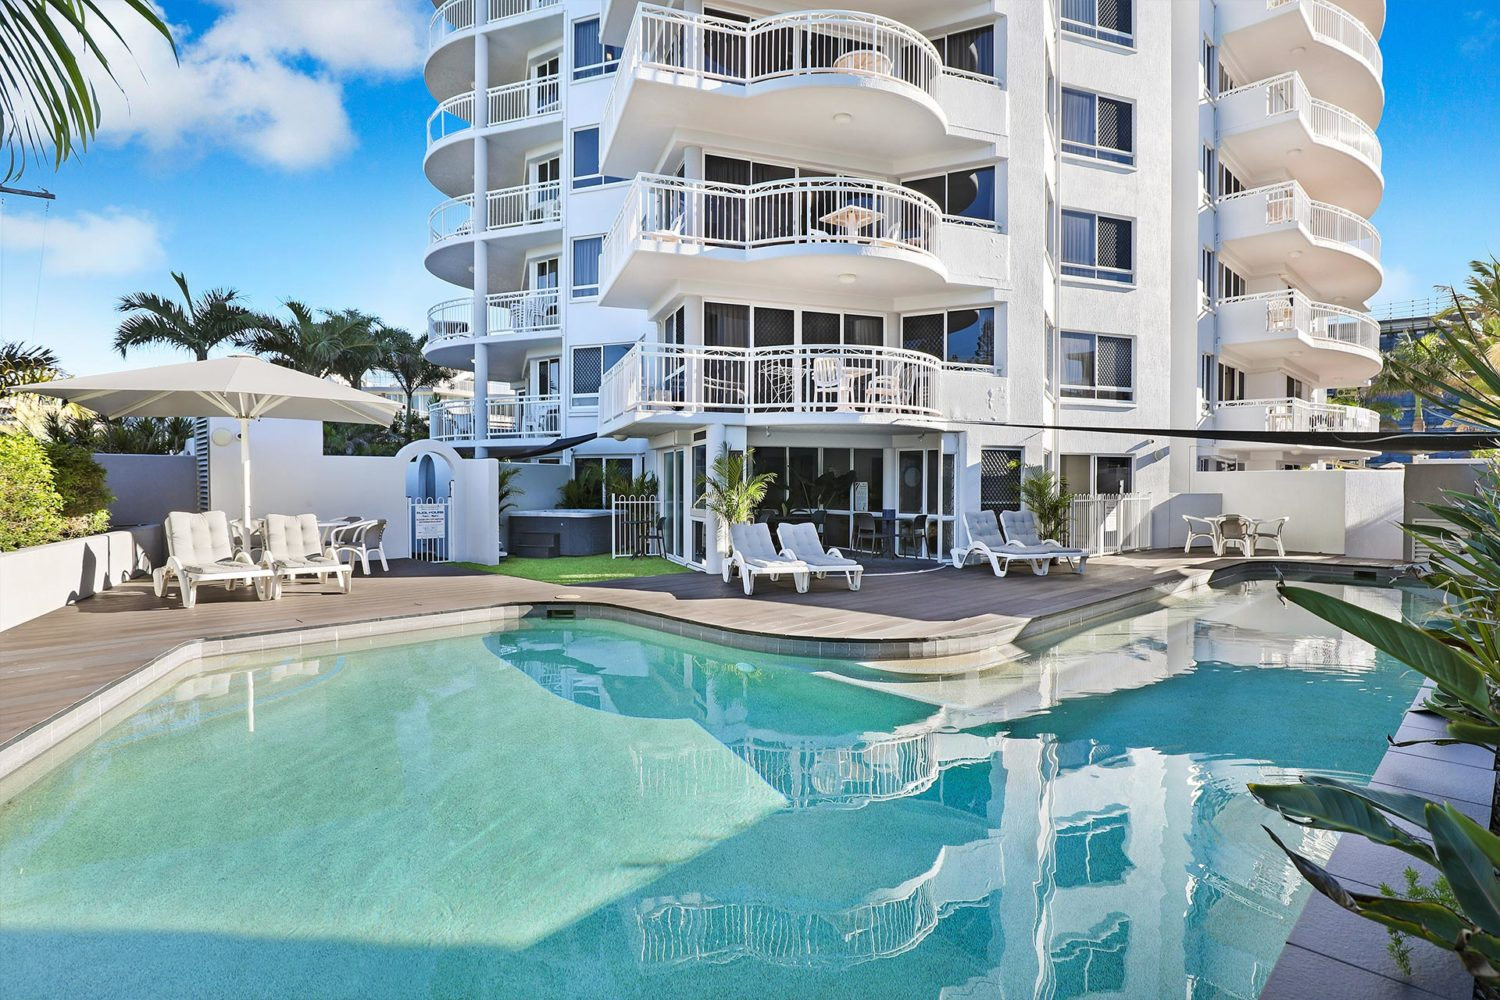 facilities-beachside-buddina-accommodation-kawana13